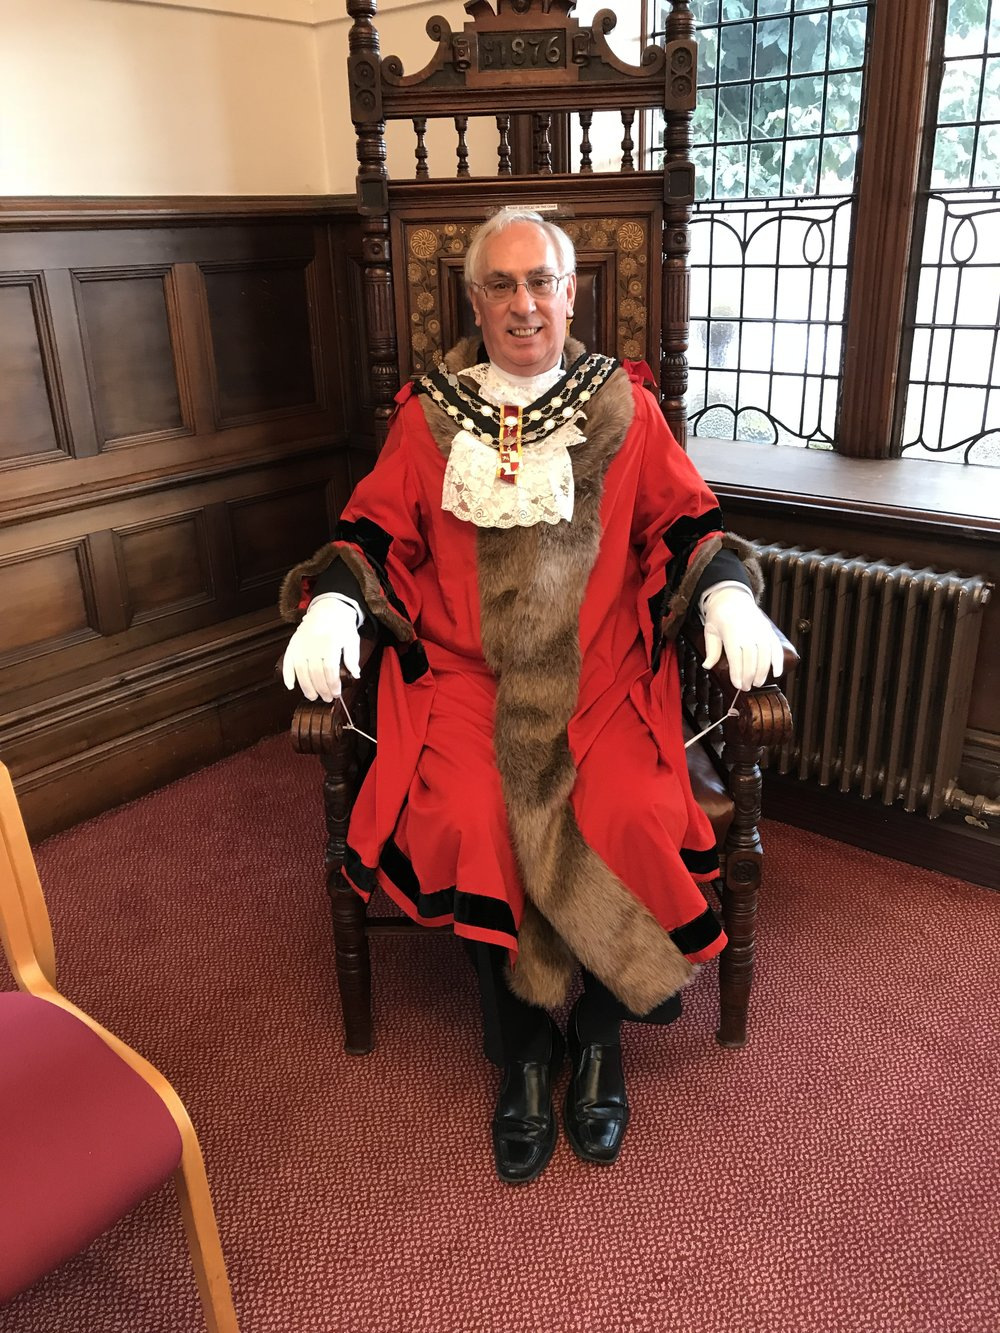 The Mayor of Altrincham (and the RVP) Ken Garrity was in attendance at the event. Ken described a wonderful story of when he flew on Concorde Alpha Charlie in Egypt.